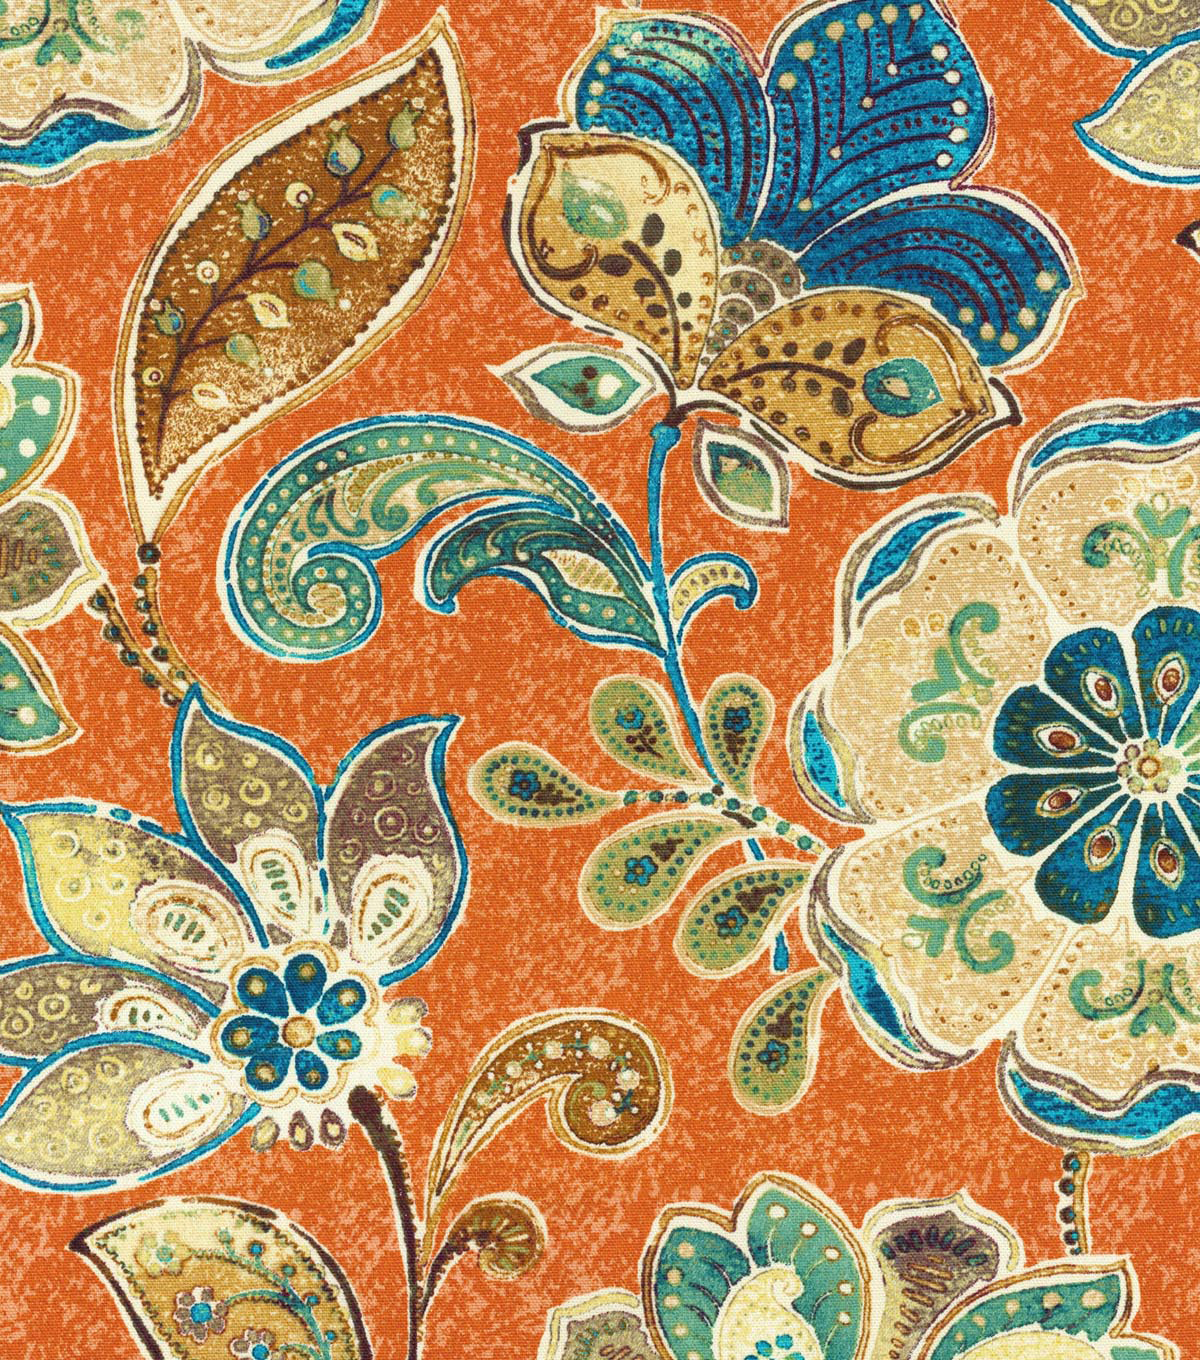 Home Decor 8\u0022x8\u0022 Swatch Fabric-IMAN Home Javanese Garden Henna